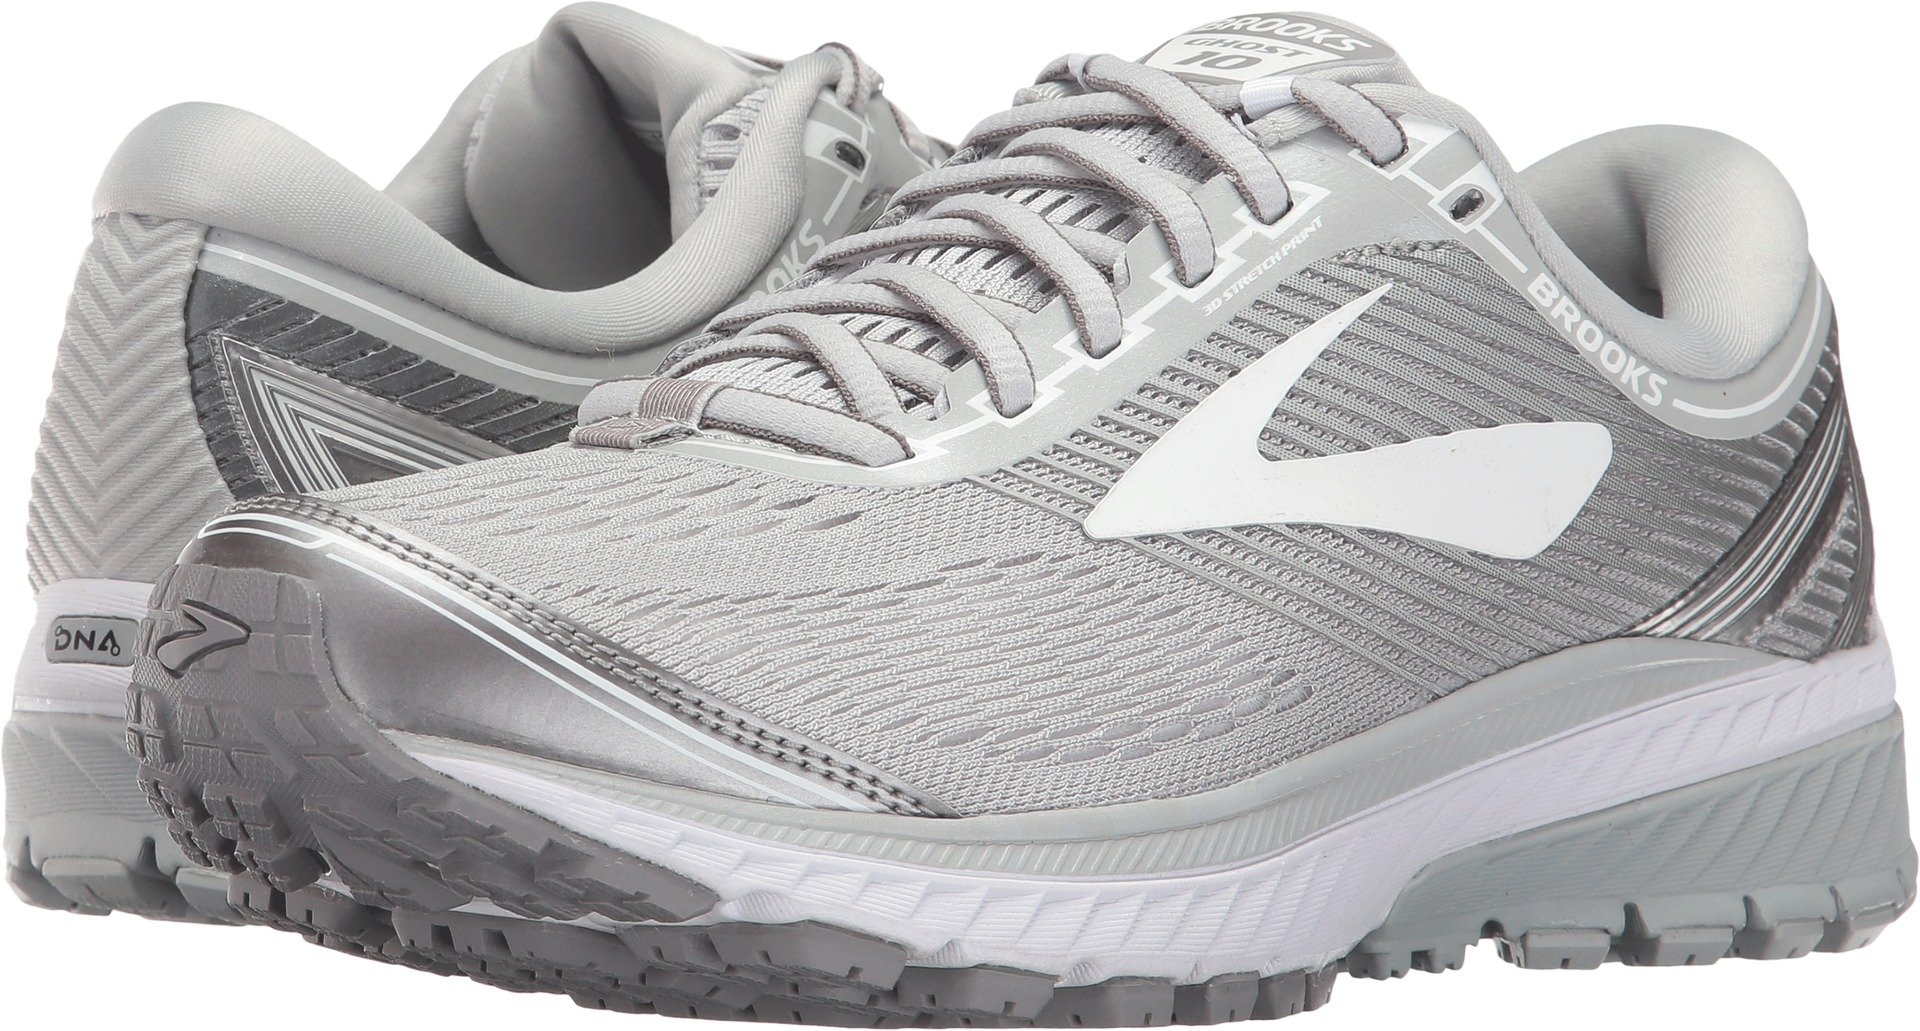 Brooks Women's Ghost 10 Microchip/White/Metallic Charcoal 10 B US